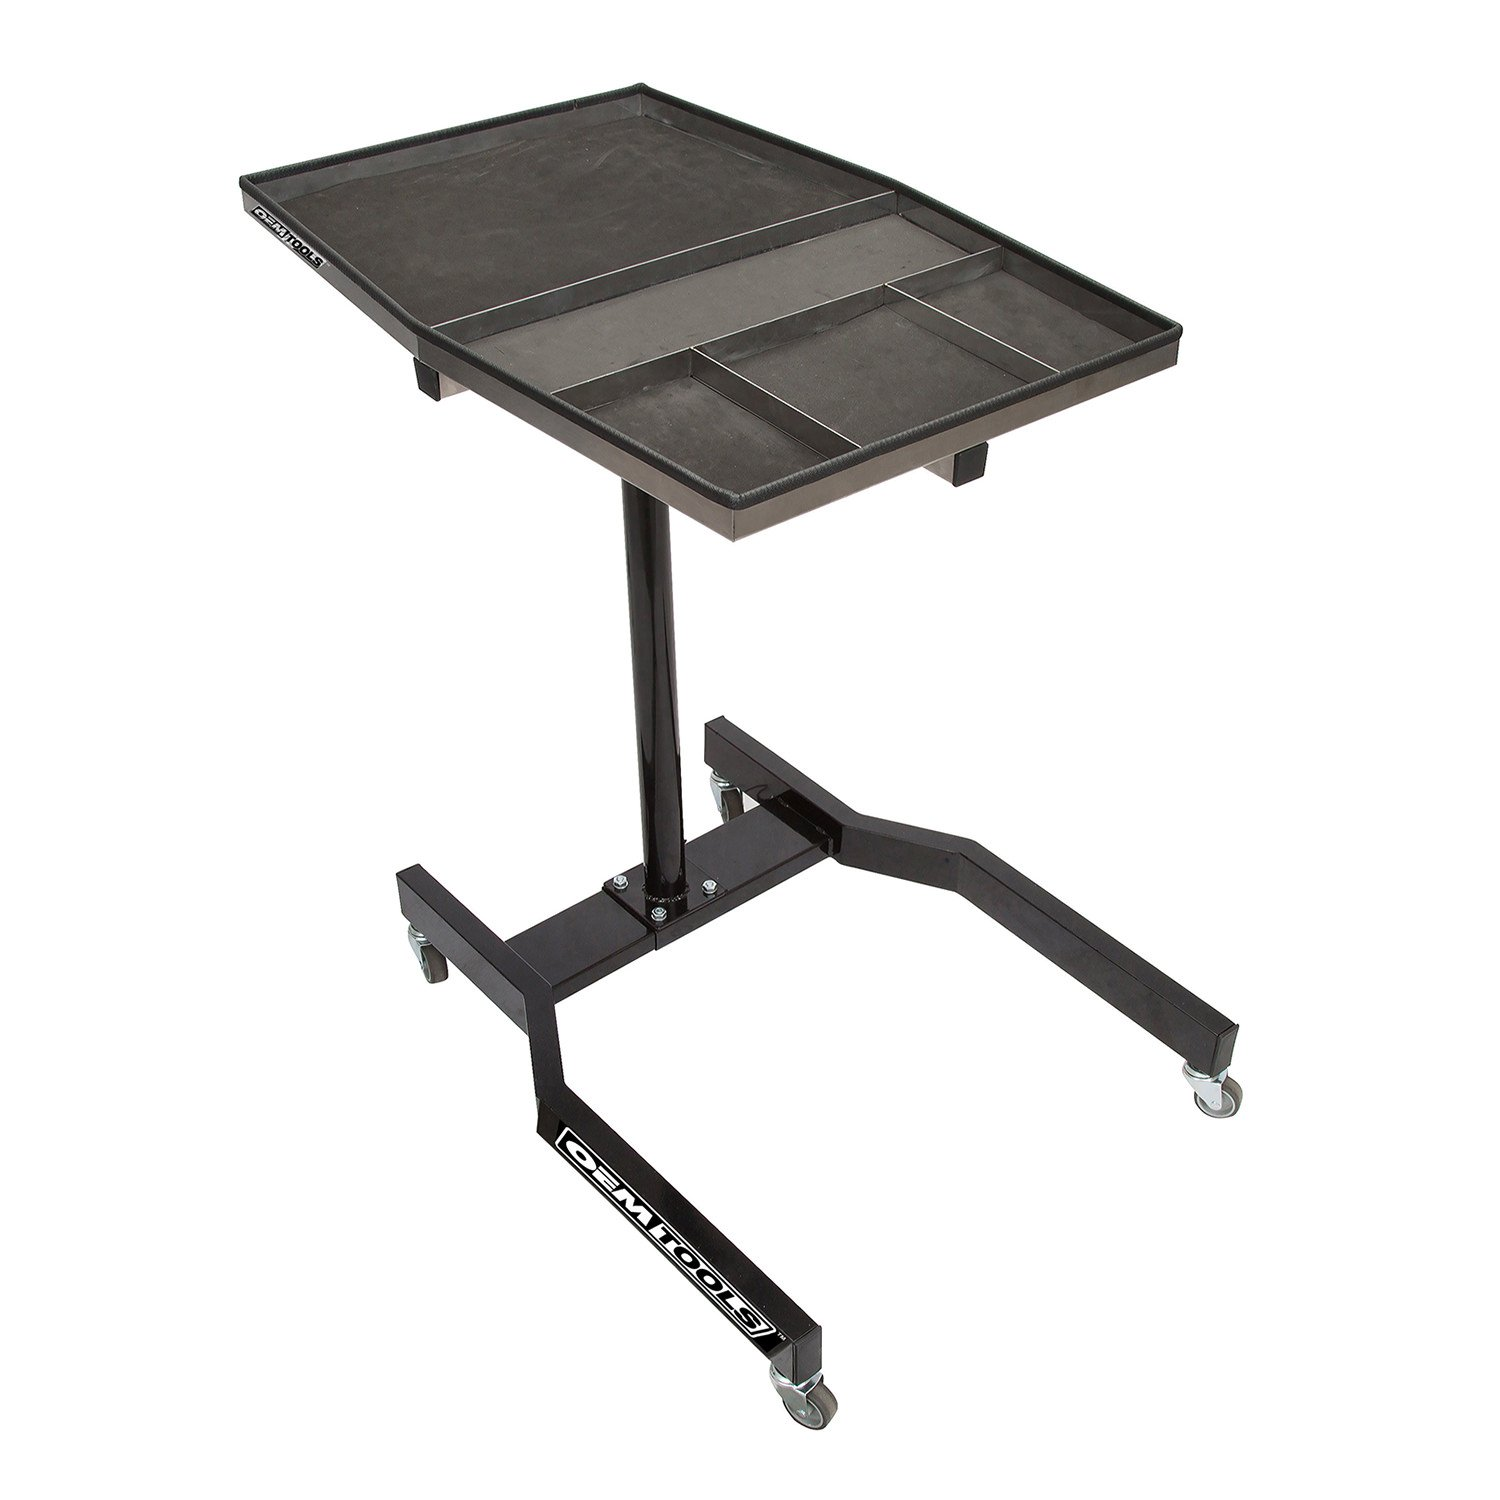 OEMTOOLS 24634 29 Inch Stainless Steel Tear Down Tray